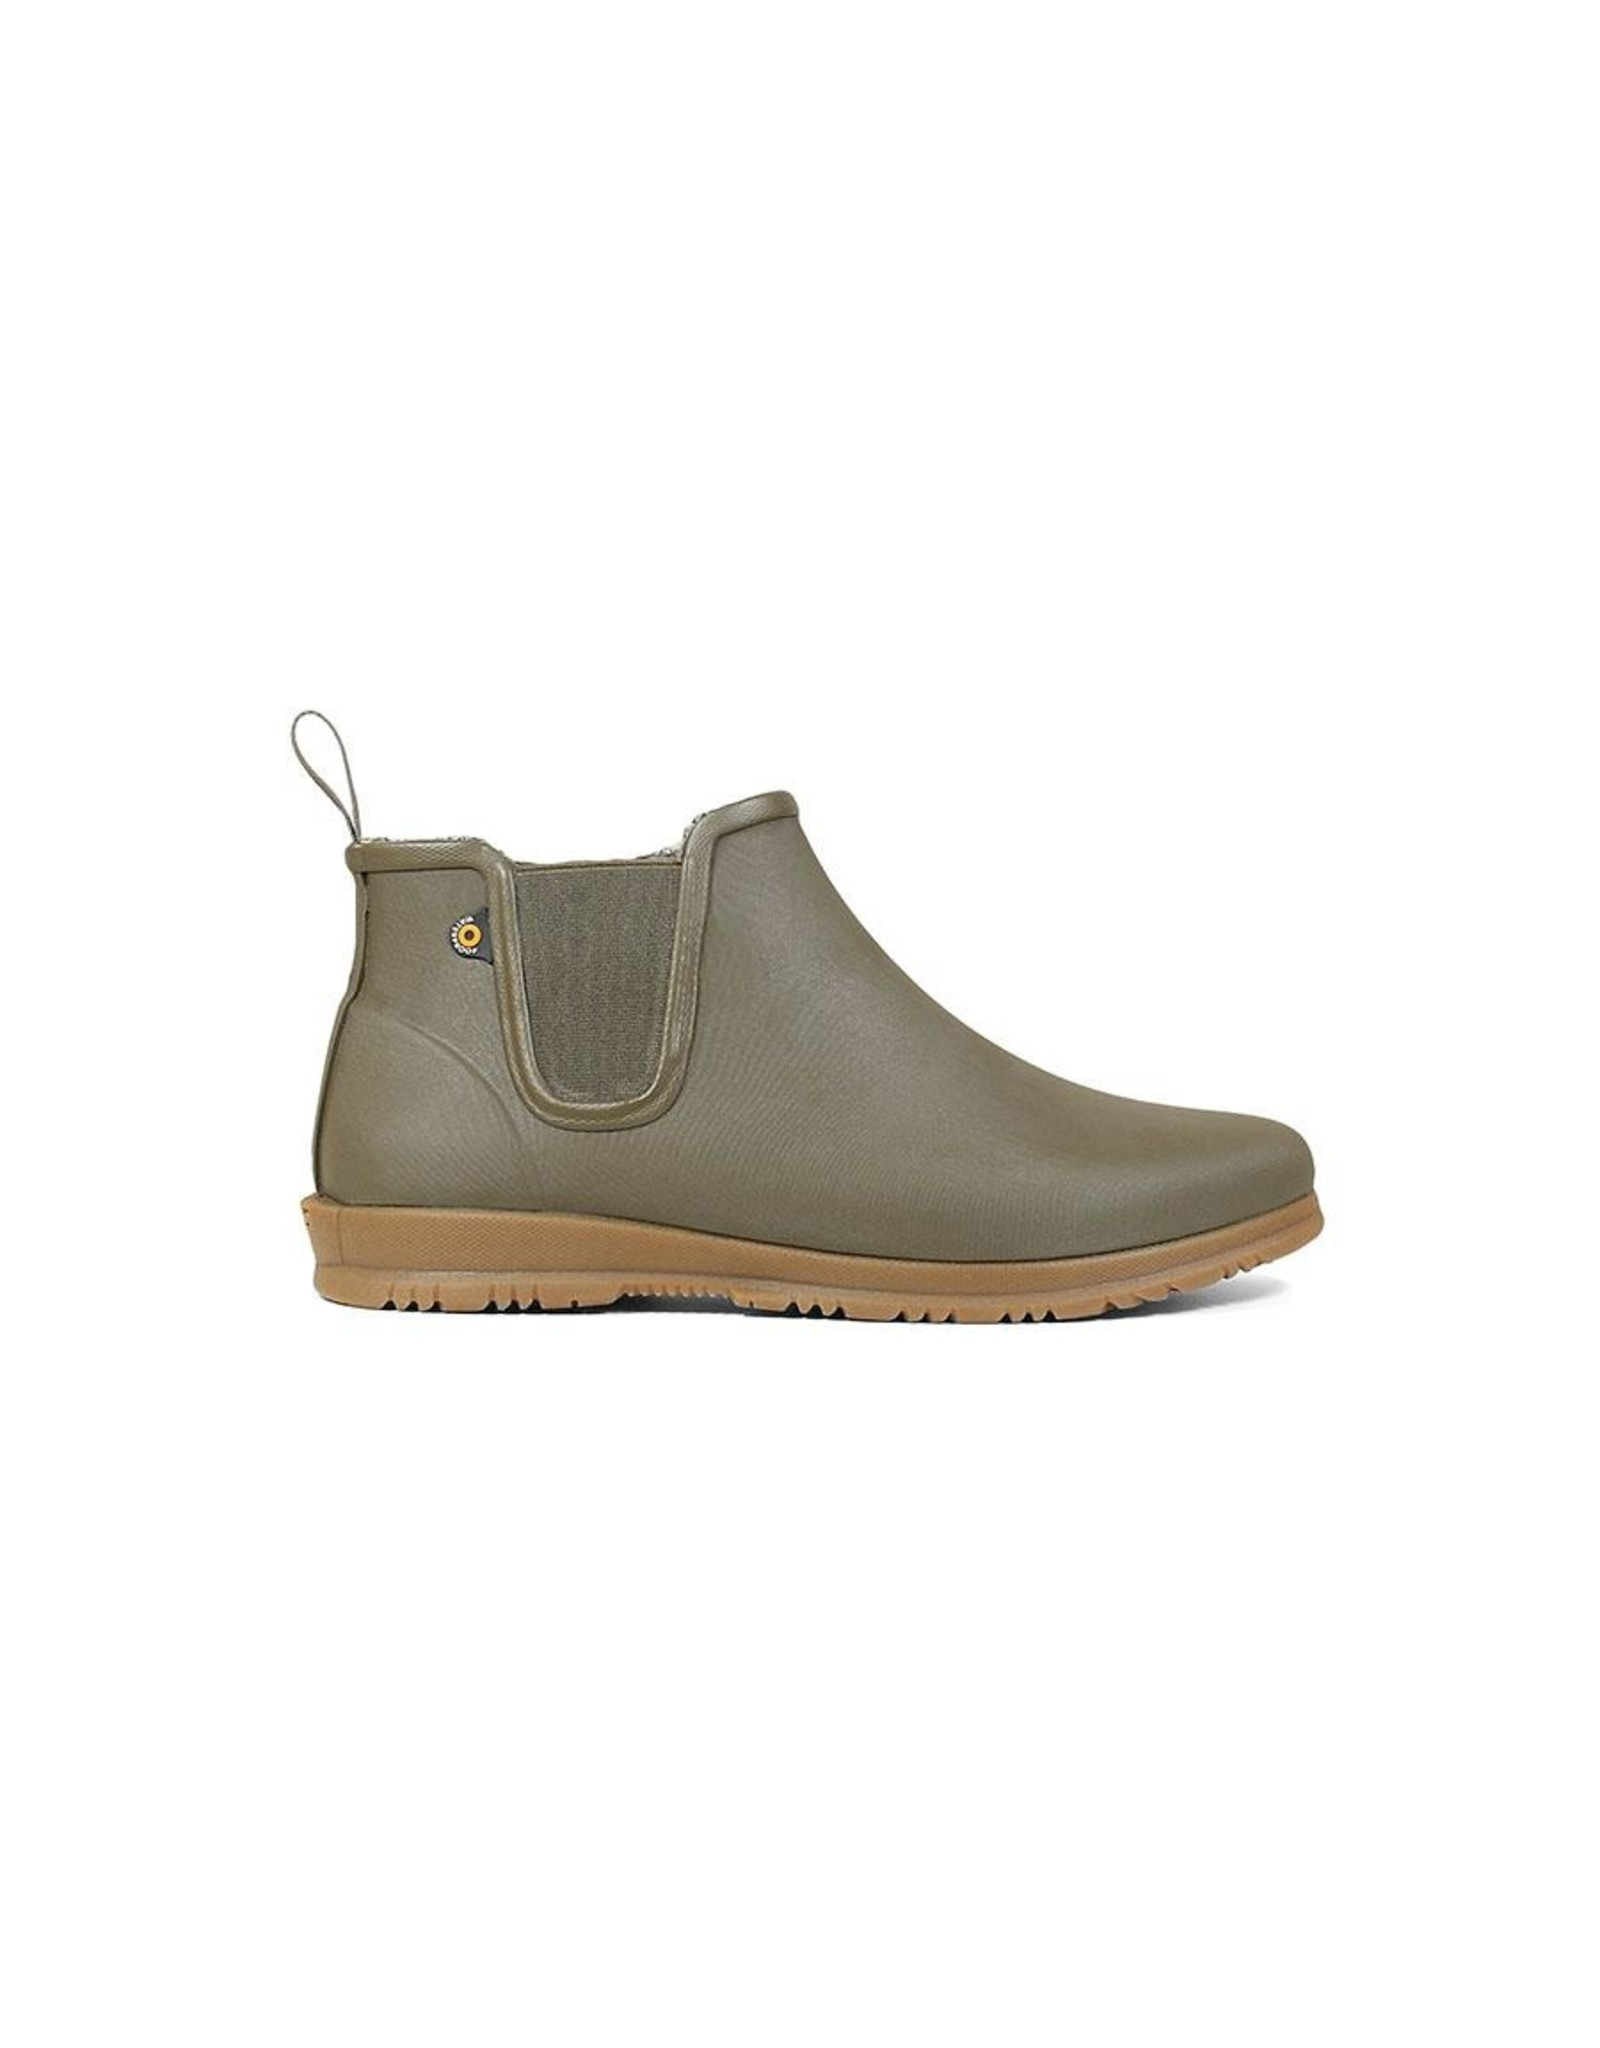 Bogs Women's Sweet Pea Winter